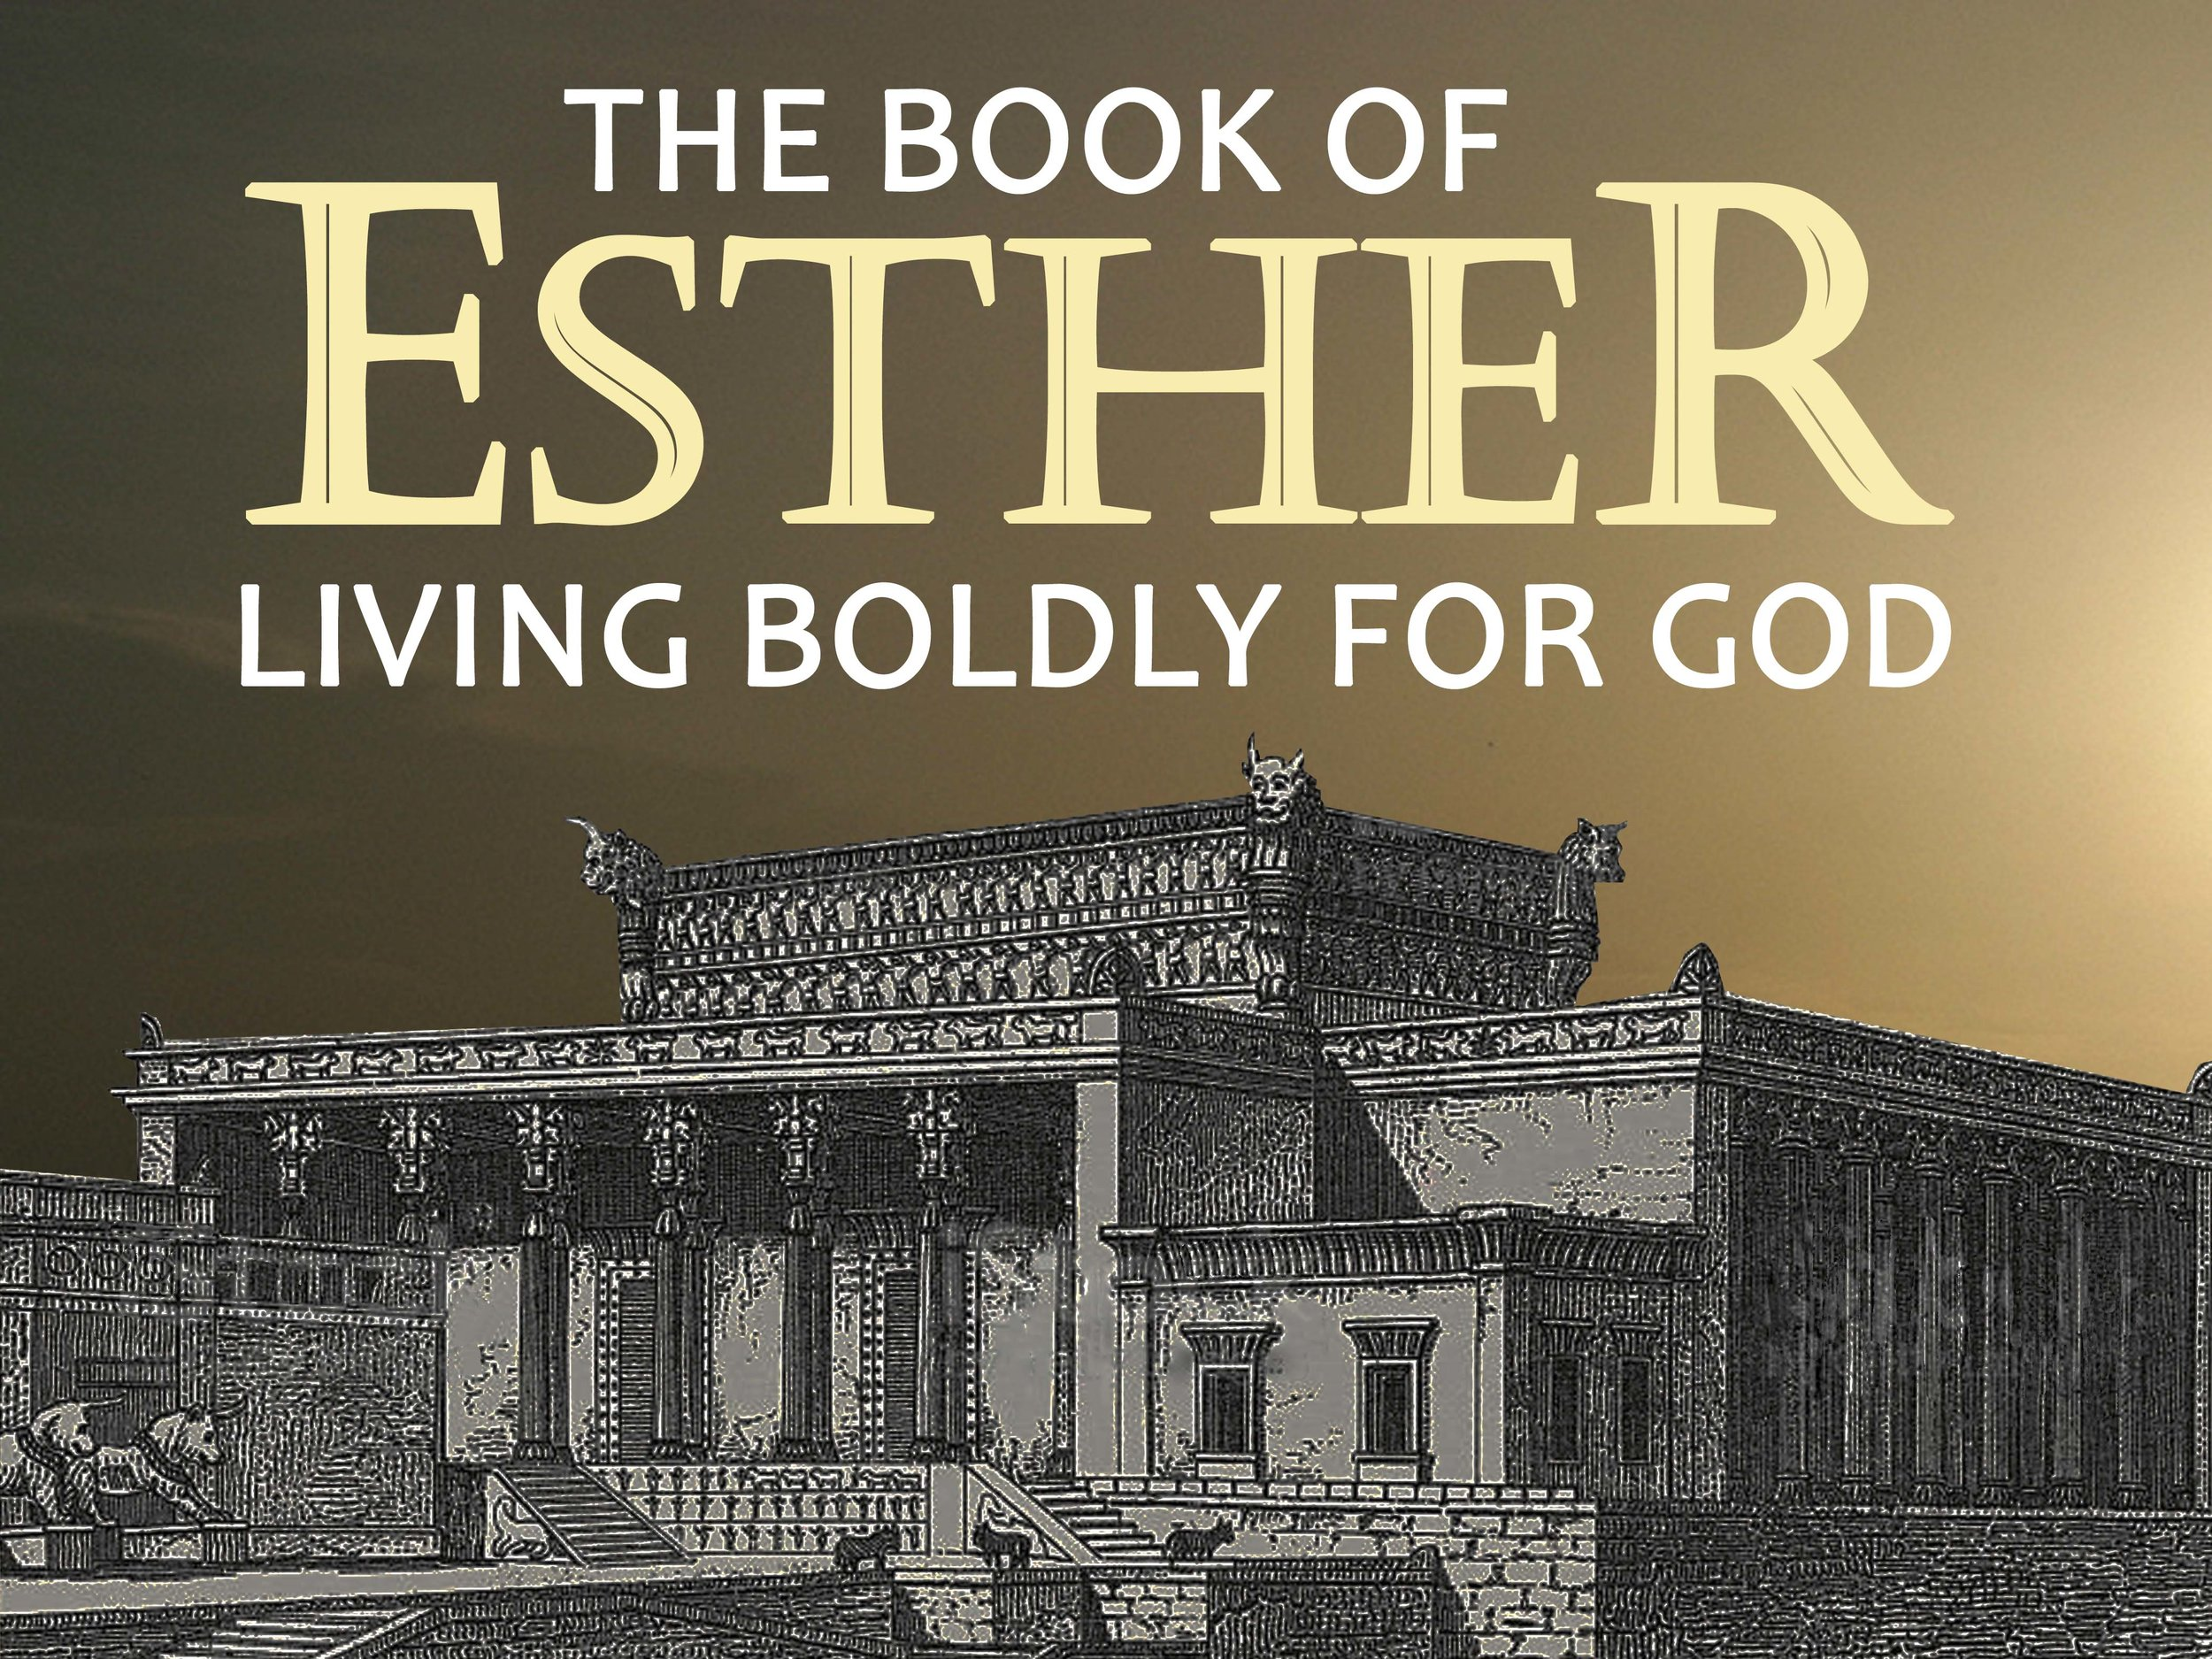 Esther was an orphaned girl, living in a land that her family had been brought to out of captivity. God chose this every day beautiful young woman to help save an entire nation, as she and her uncle lived boldly for God. -